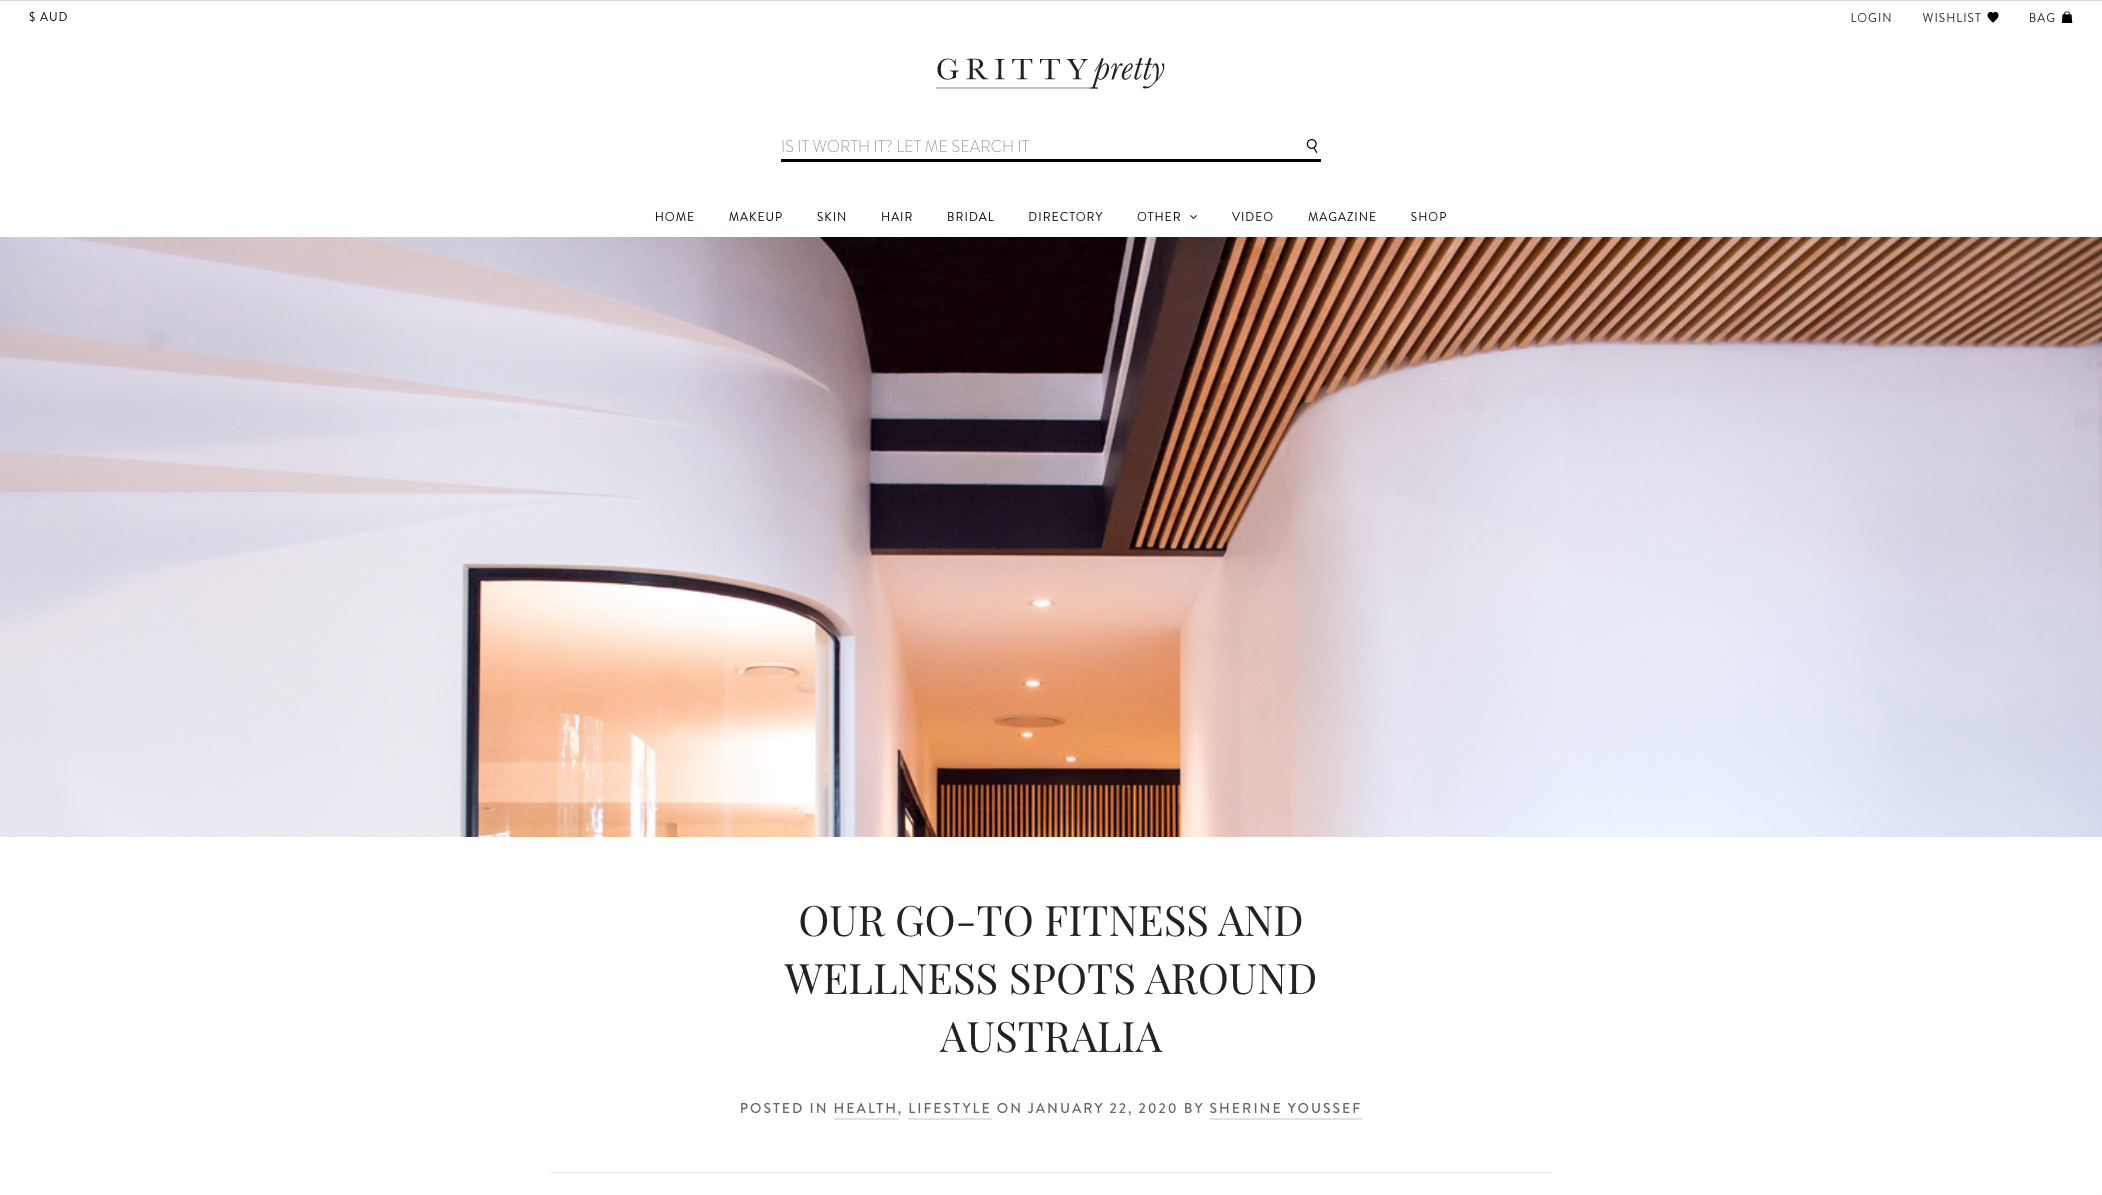 Gritty Pretty - our go to wellness spots around Australia - selph health studios